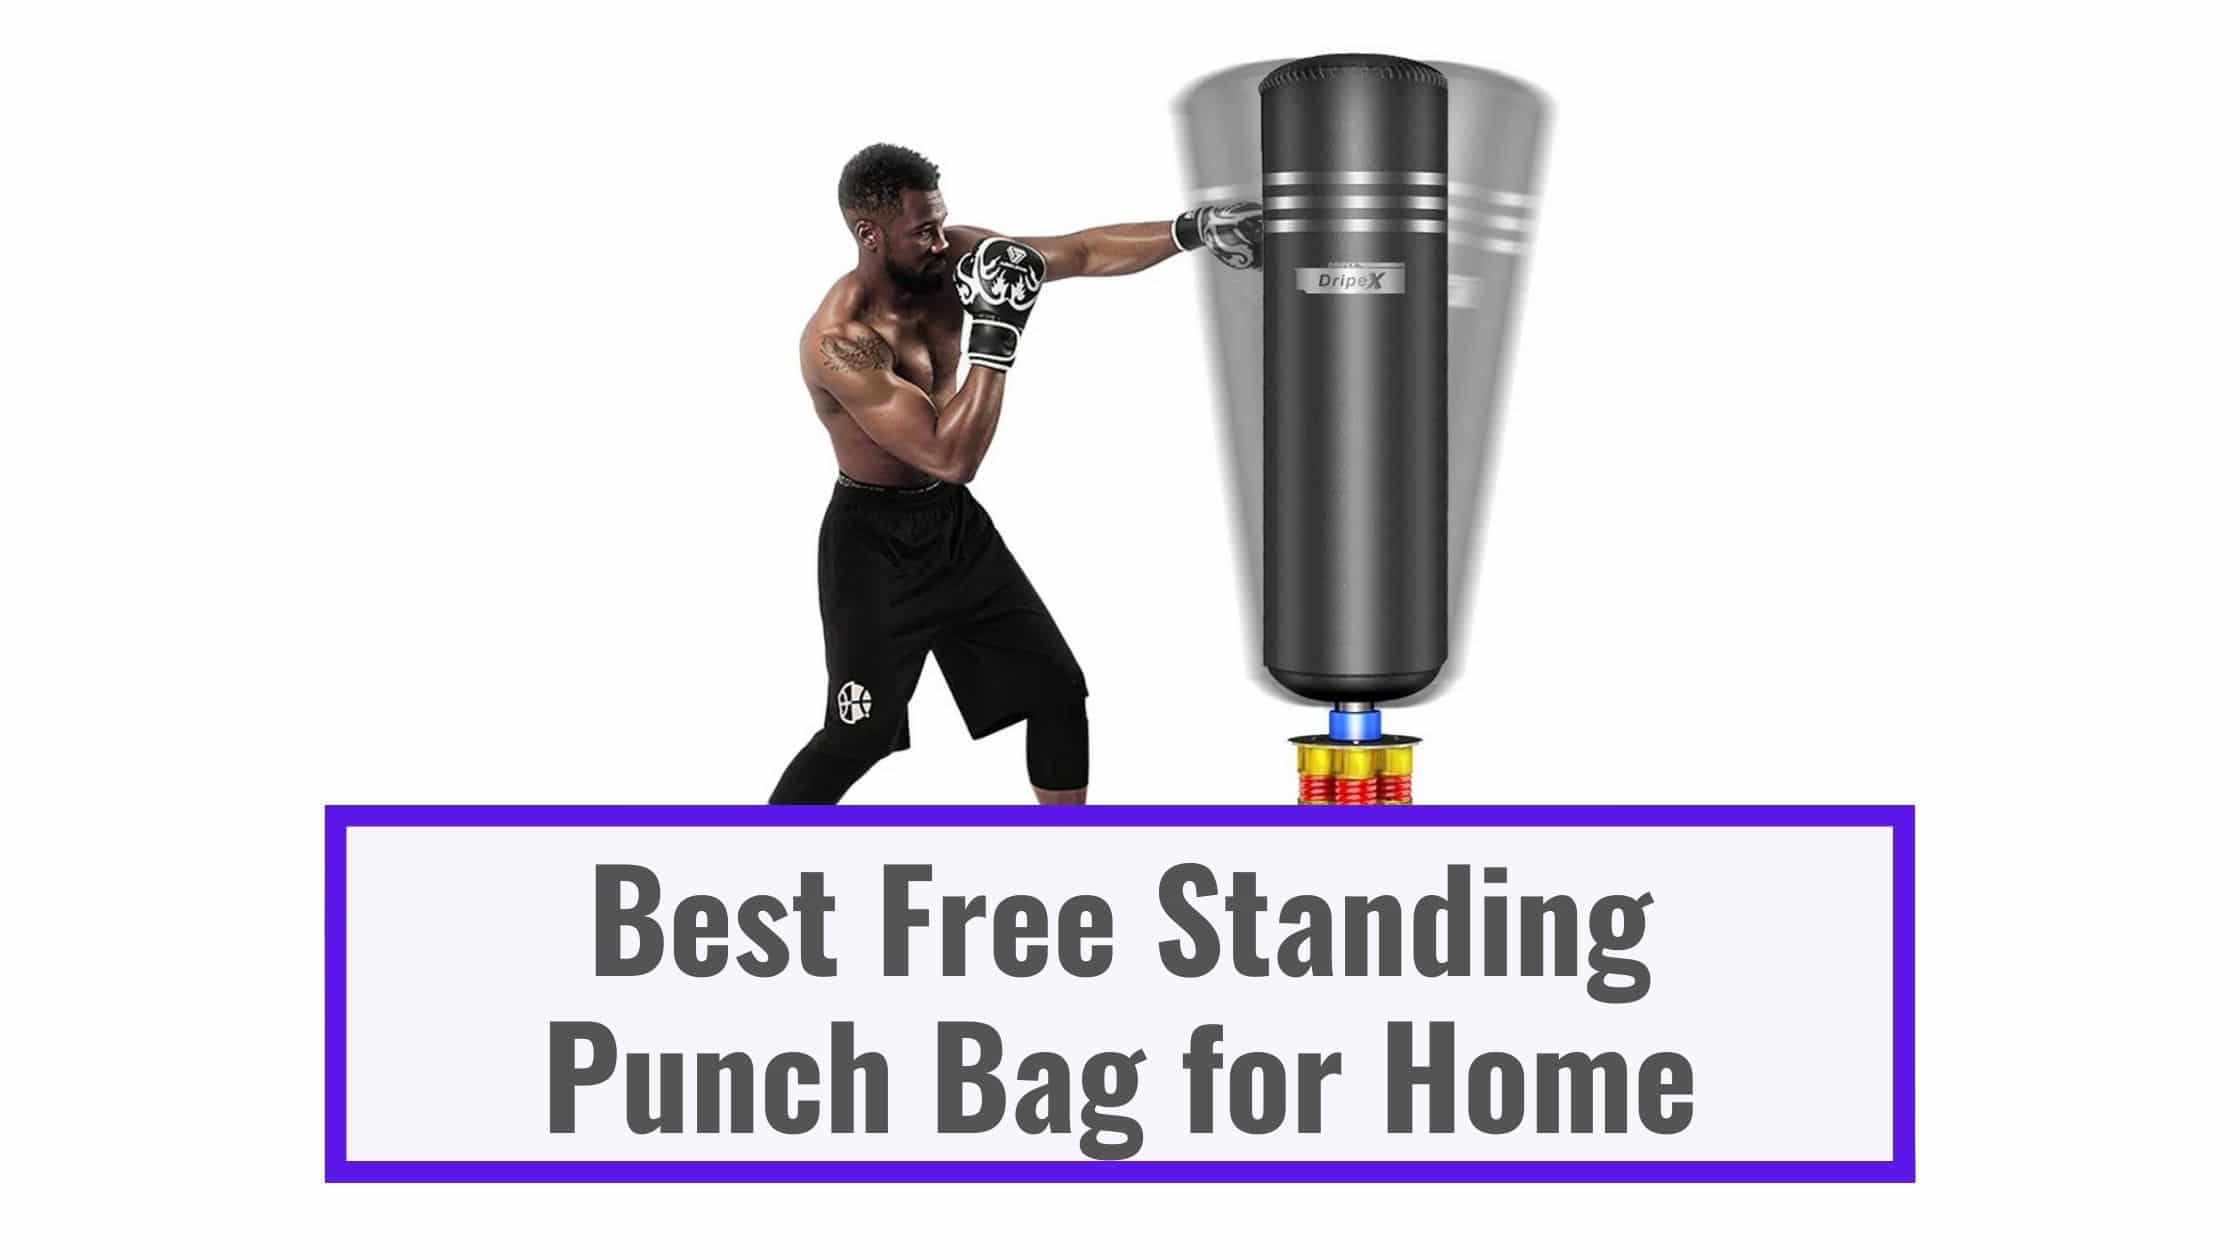 Best Free Standing Punch Bag for Home